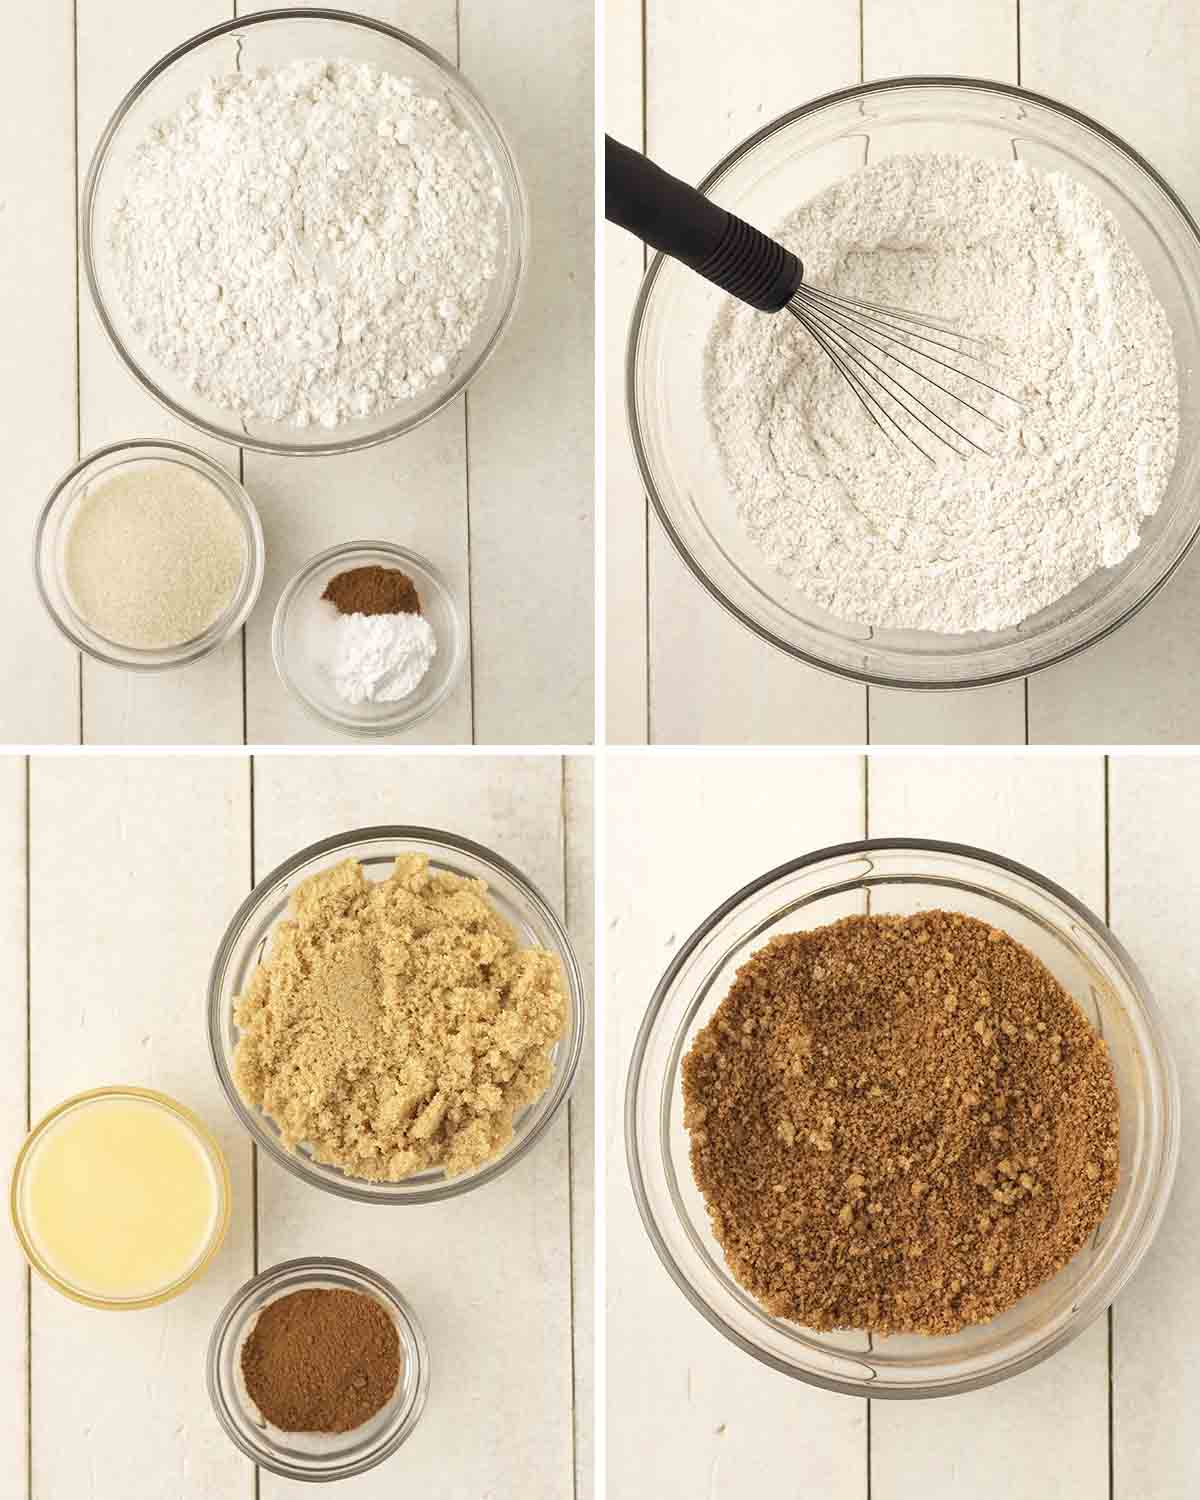 A collage of four images showing the ingredients needed to make the dough and filling for gluten free cinnamon rolls.